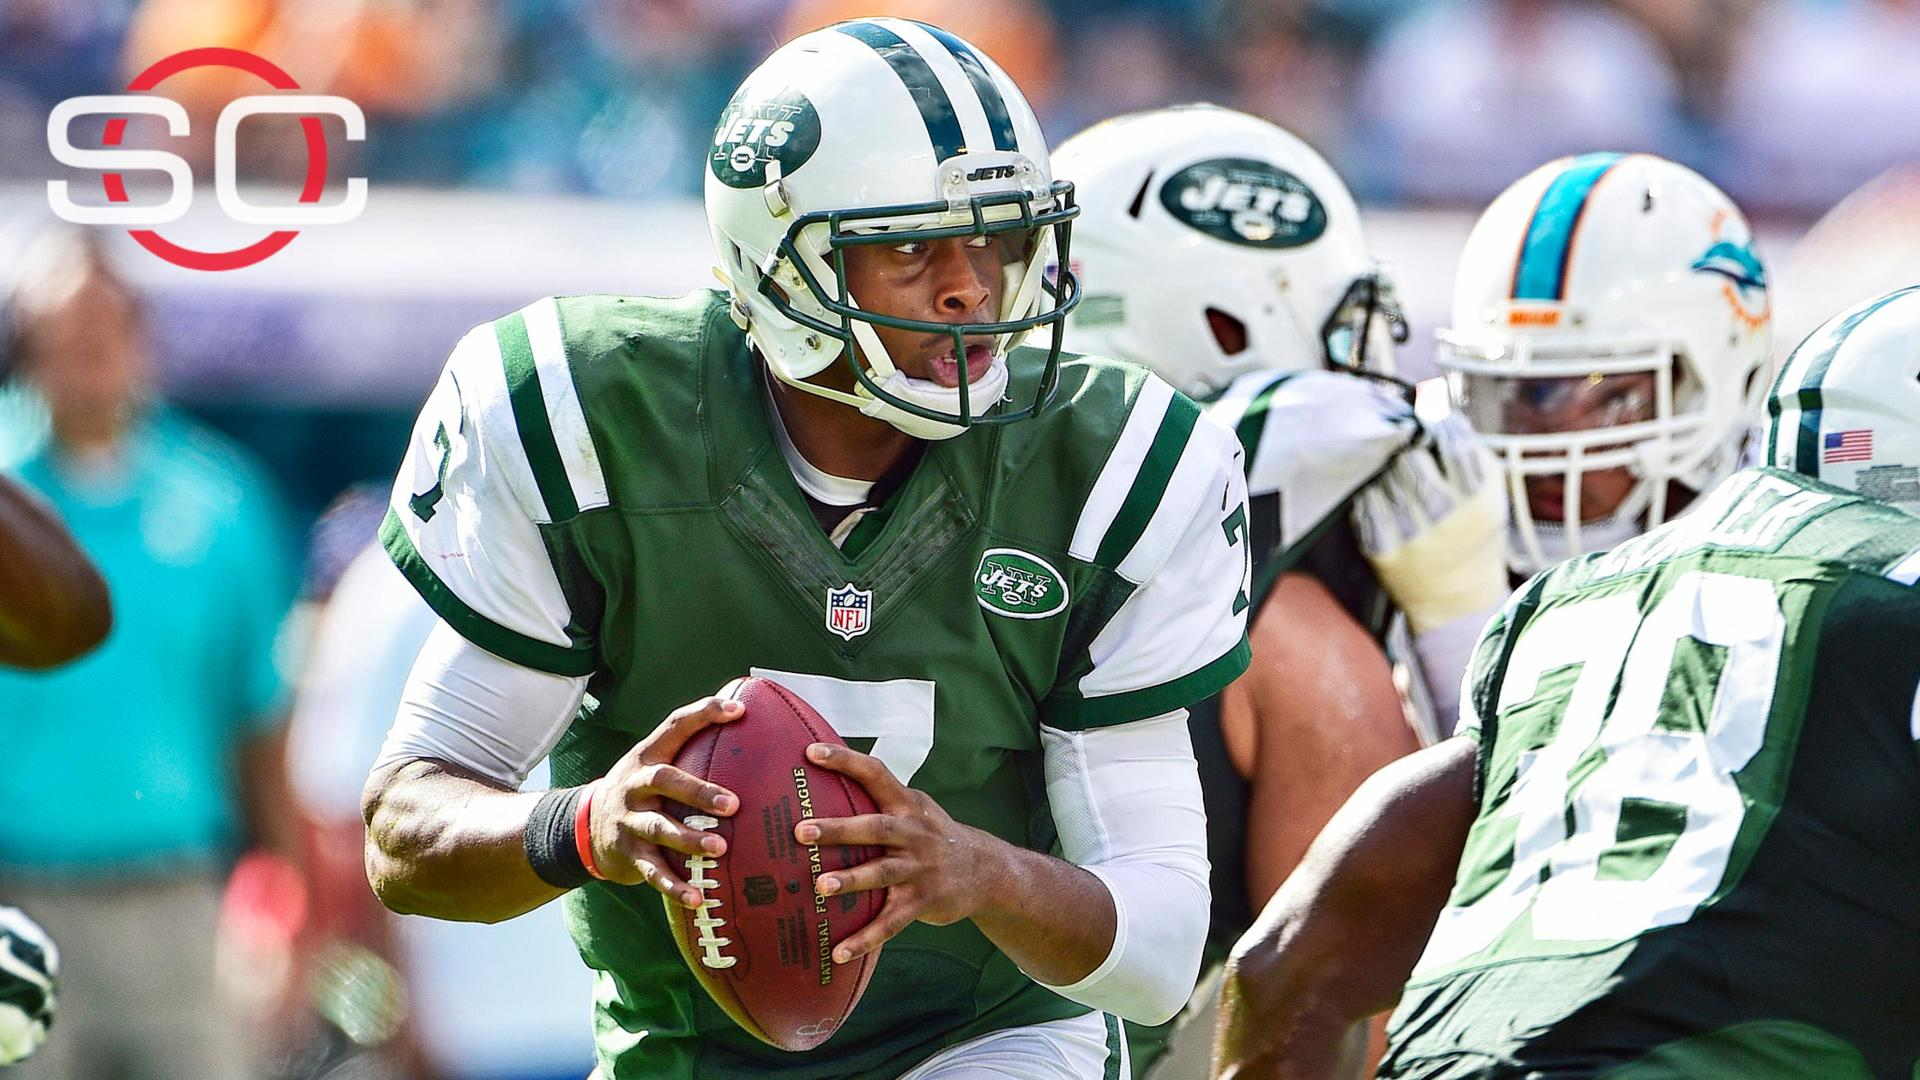 Jets still a punch line, minus the laughs, after Geno Smith breaks